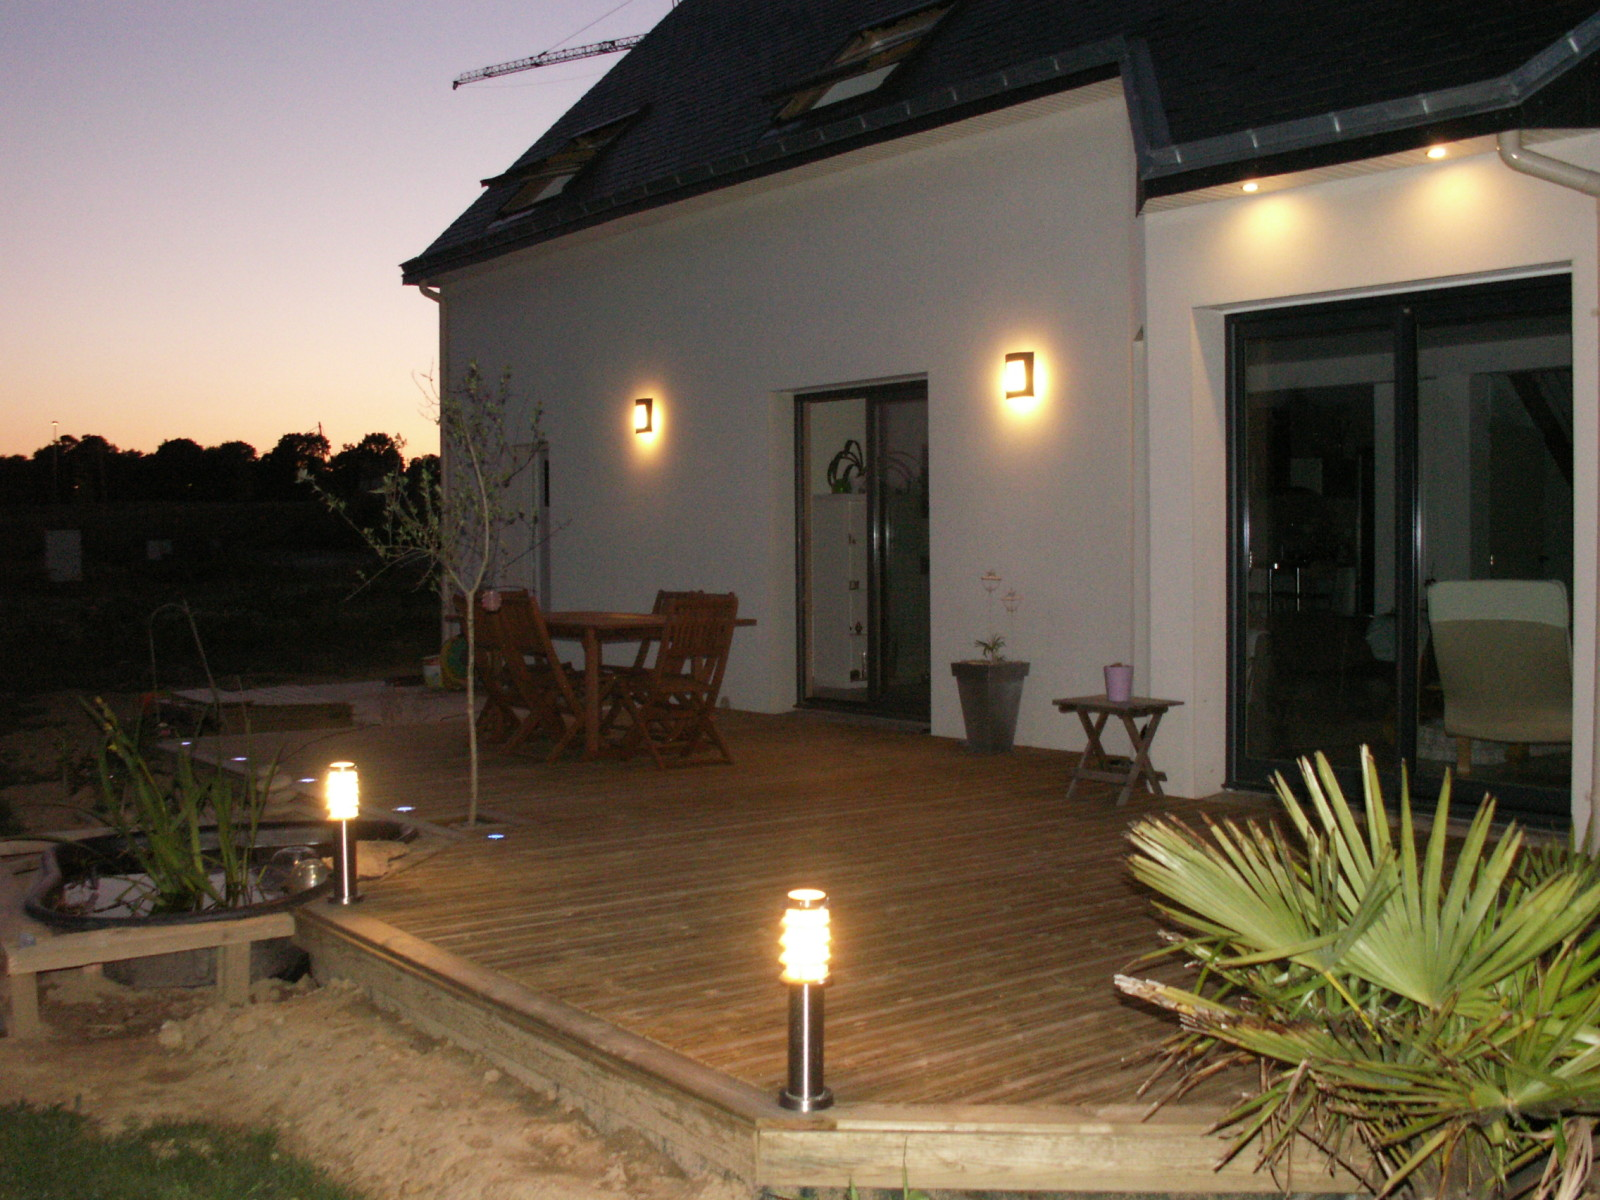 Clairage terrasse eclairage ext rieur for Eclairage led exterieur terrasse